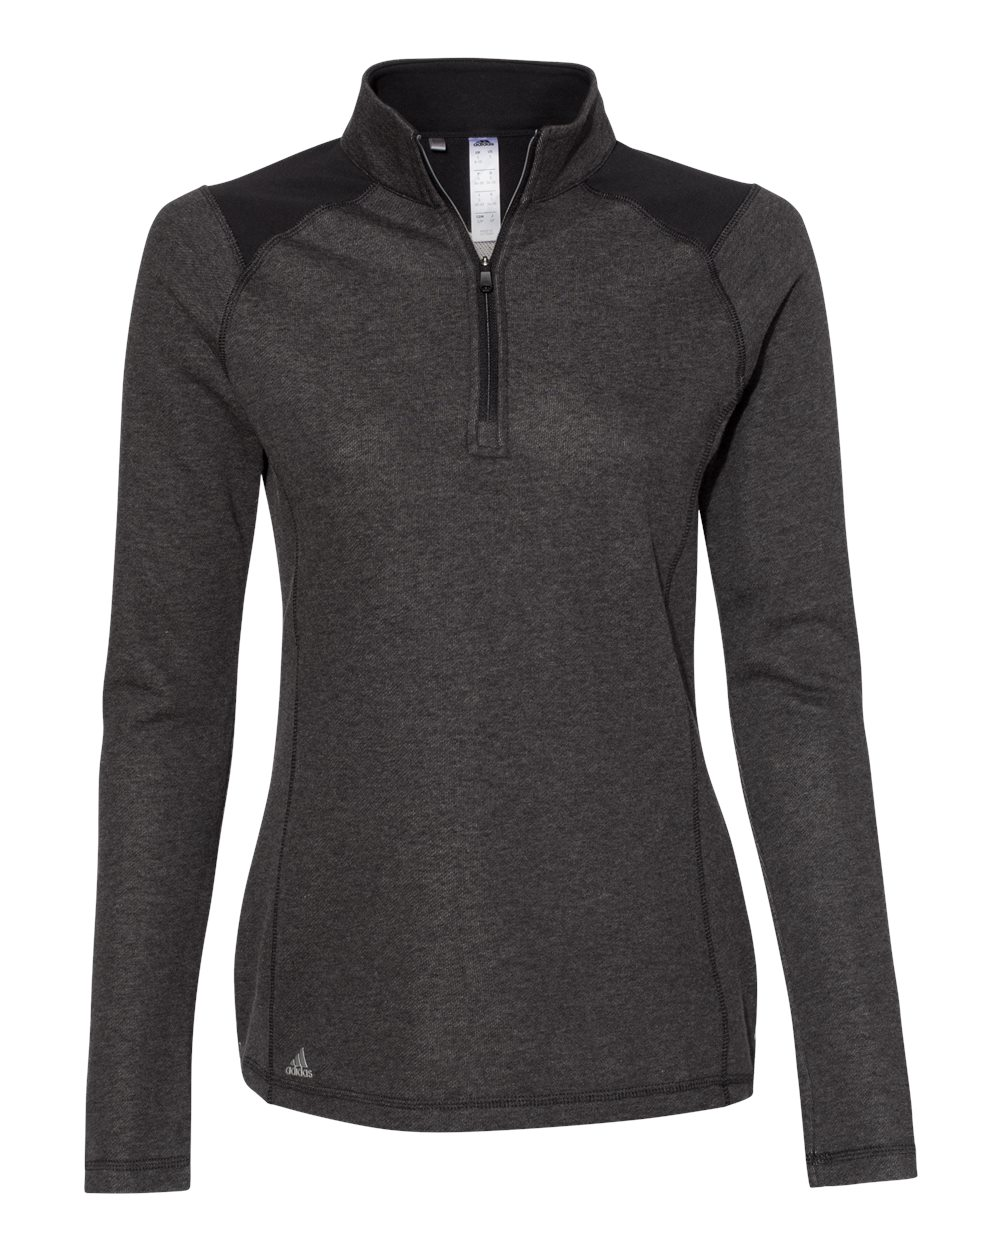 Adidas A464 - Women's Heathered Quarter Zip Pullover ...